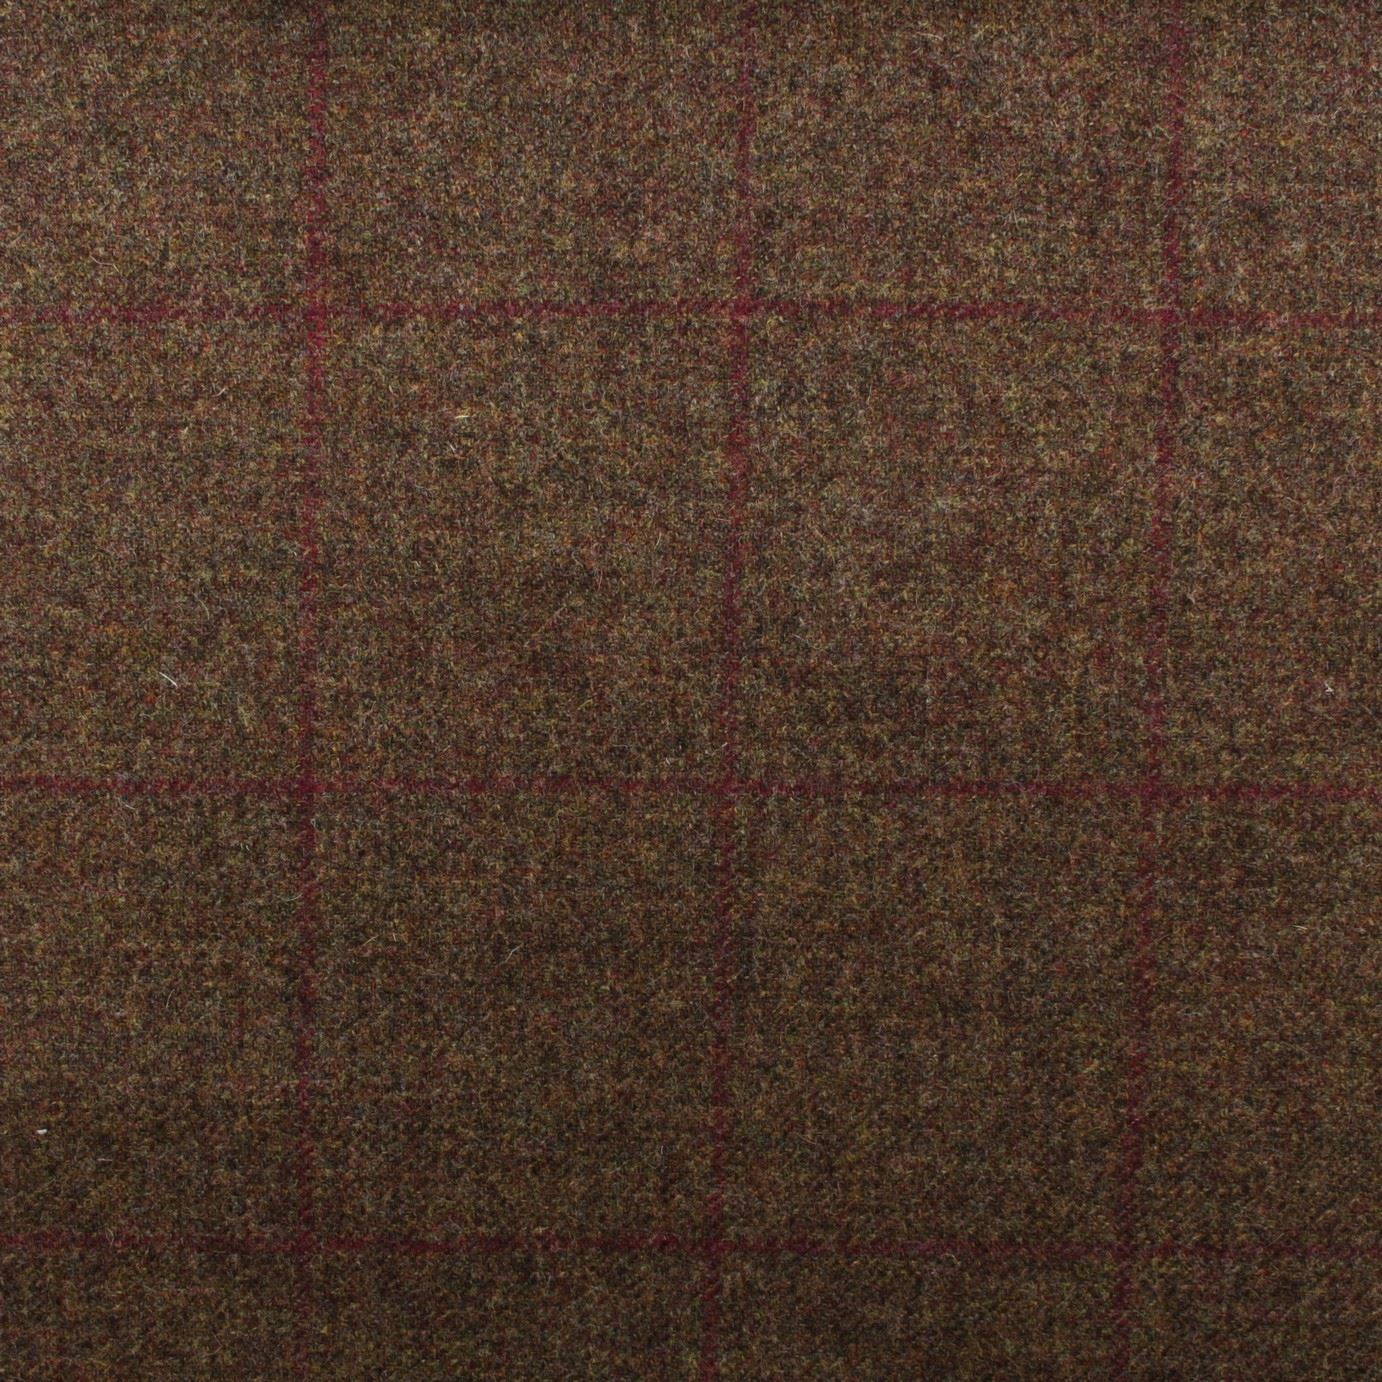 100% Pure Scotish Upholstery Wool Woven Tartan Check Plaid Curtain ...